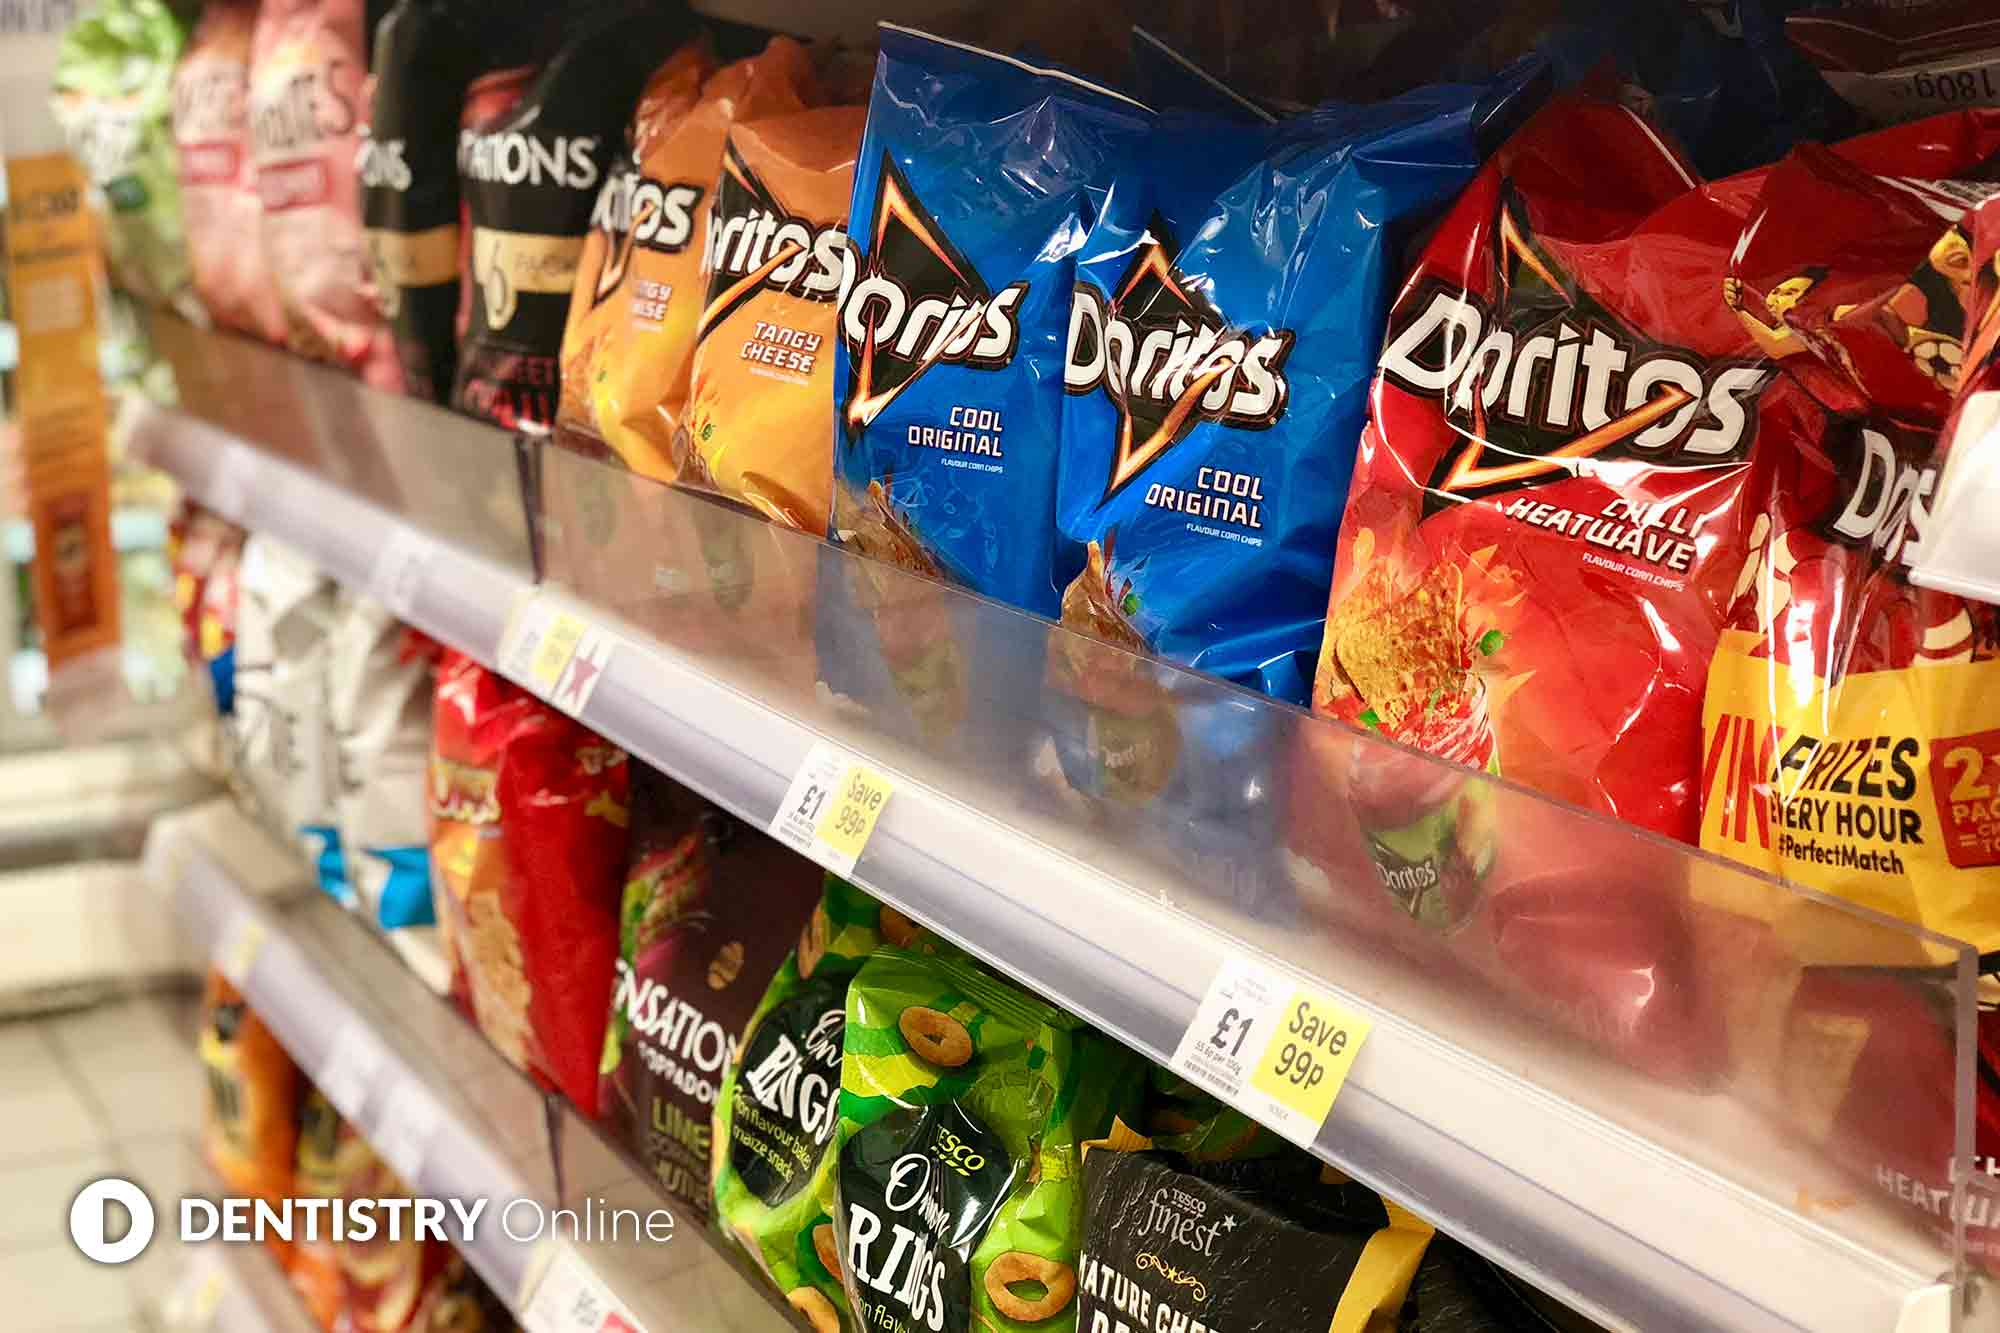 'Buy one get one free' promotions on unhealthy snacks will be cut back in supermarkets